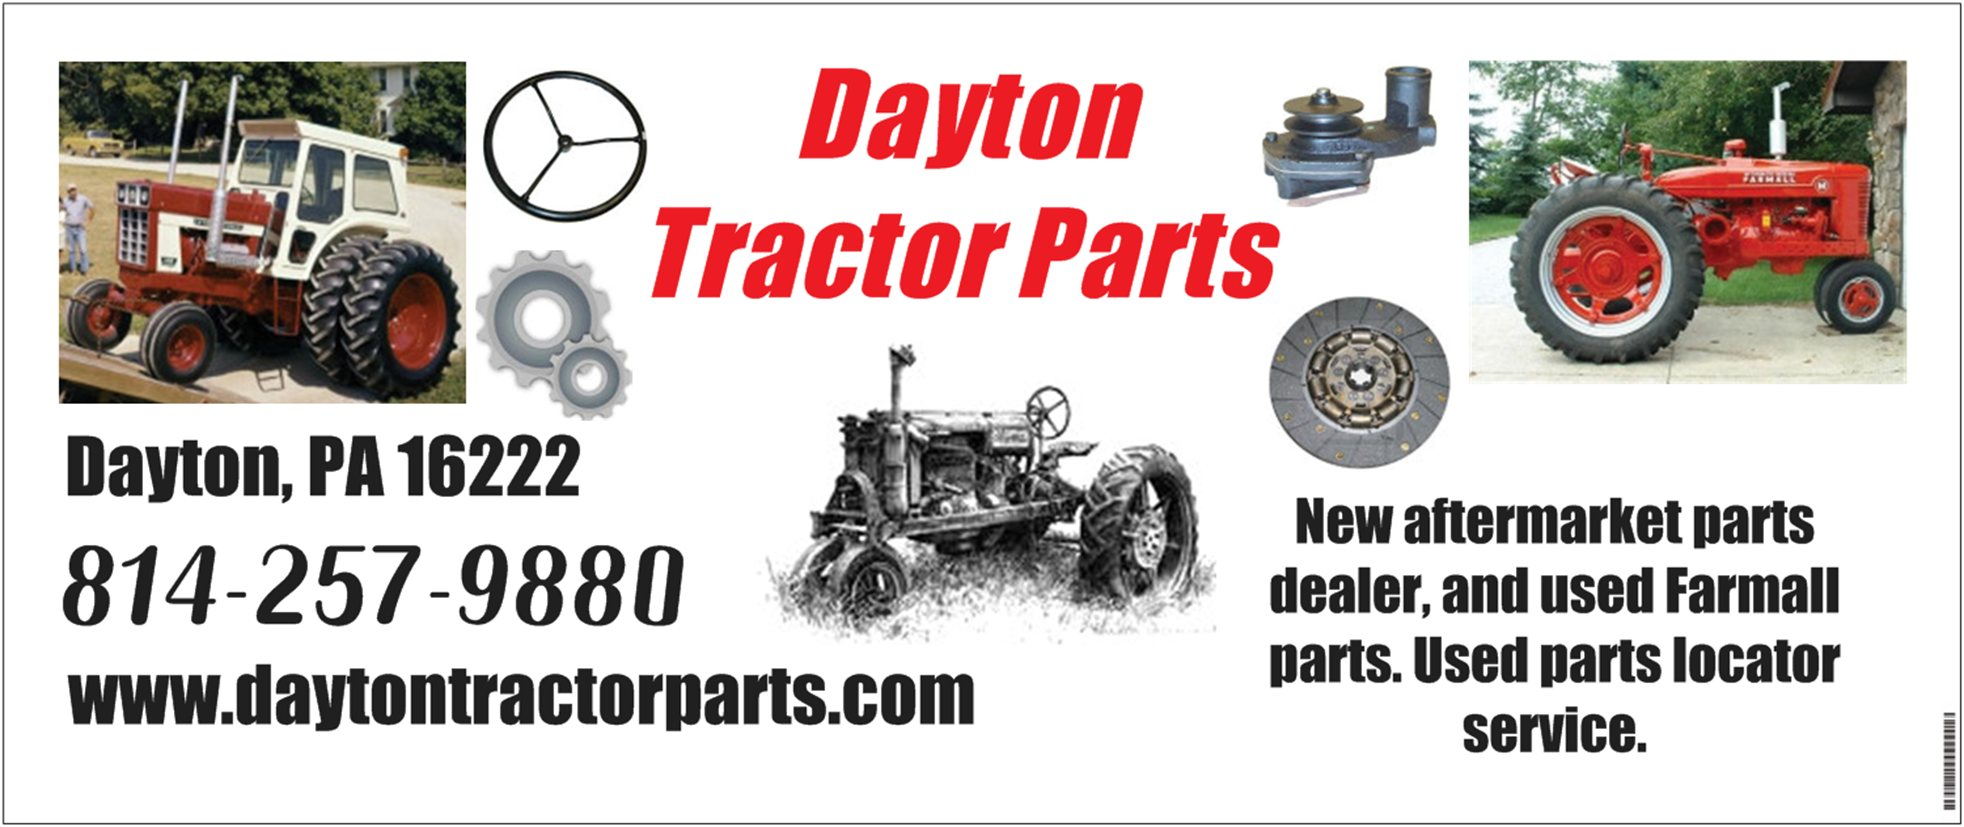 Dayton Tractor Parts Farmall Wiring Harness Home